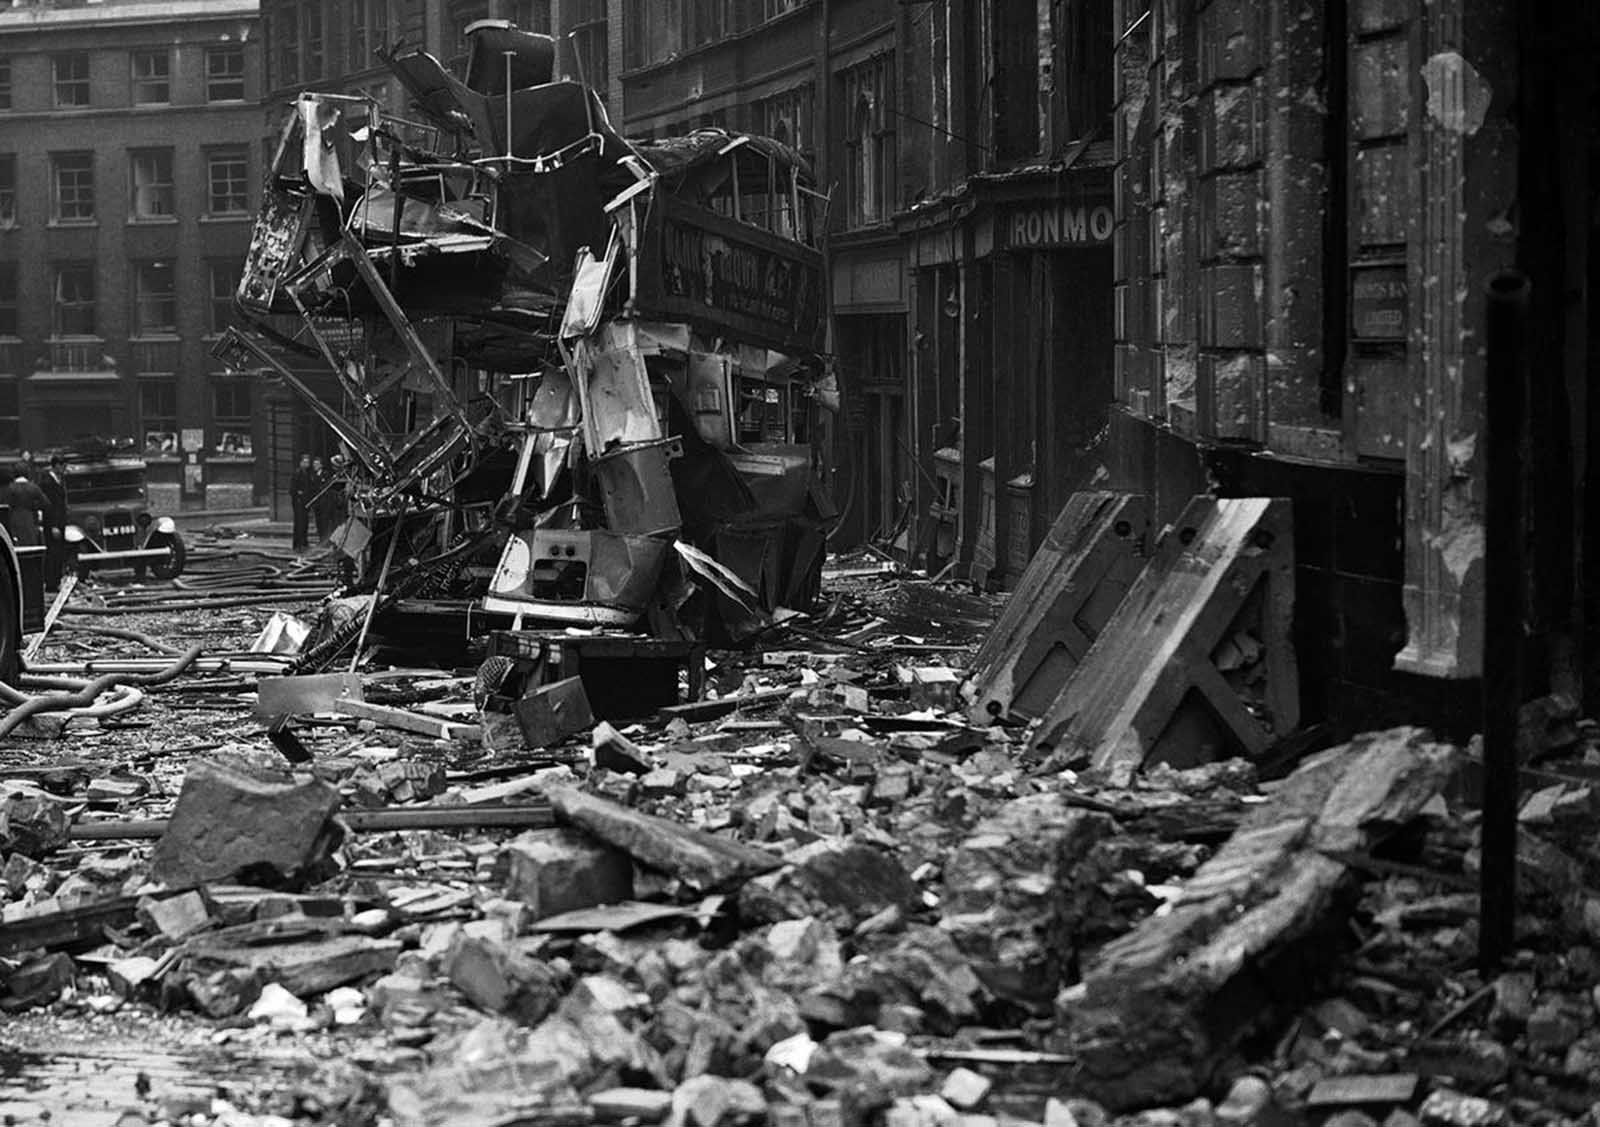 Air raid damage, including the twisted remains of a double-decker city bus, in the City of London on September 10, 1940.